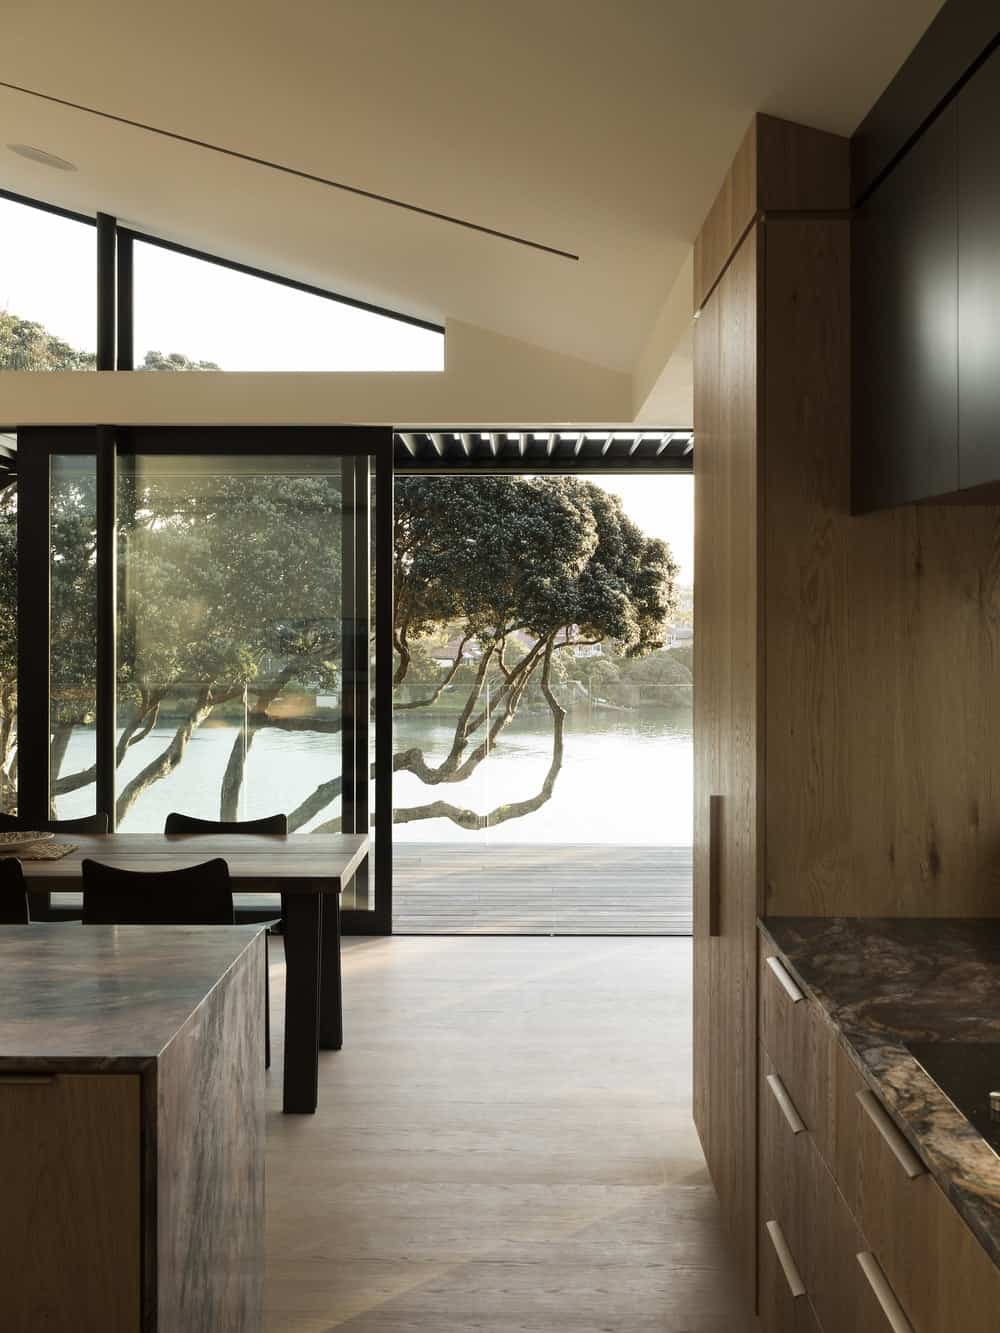 Sliding glass door leading out to the patio in the Herne Bay Hideaway designed by Lloyd Hartley Architects.